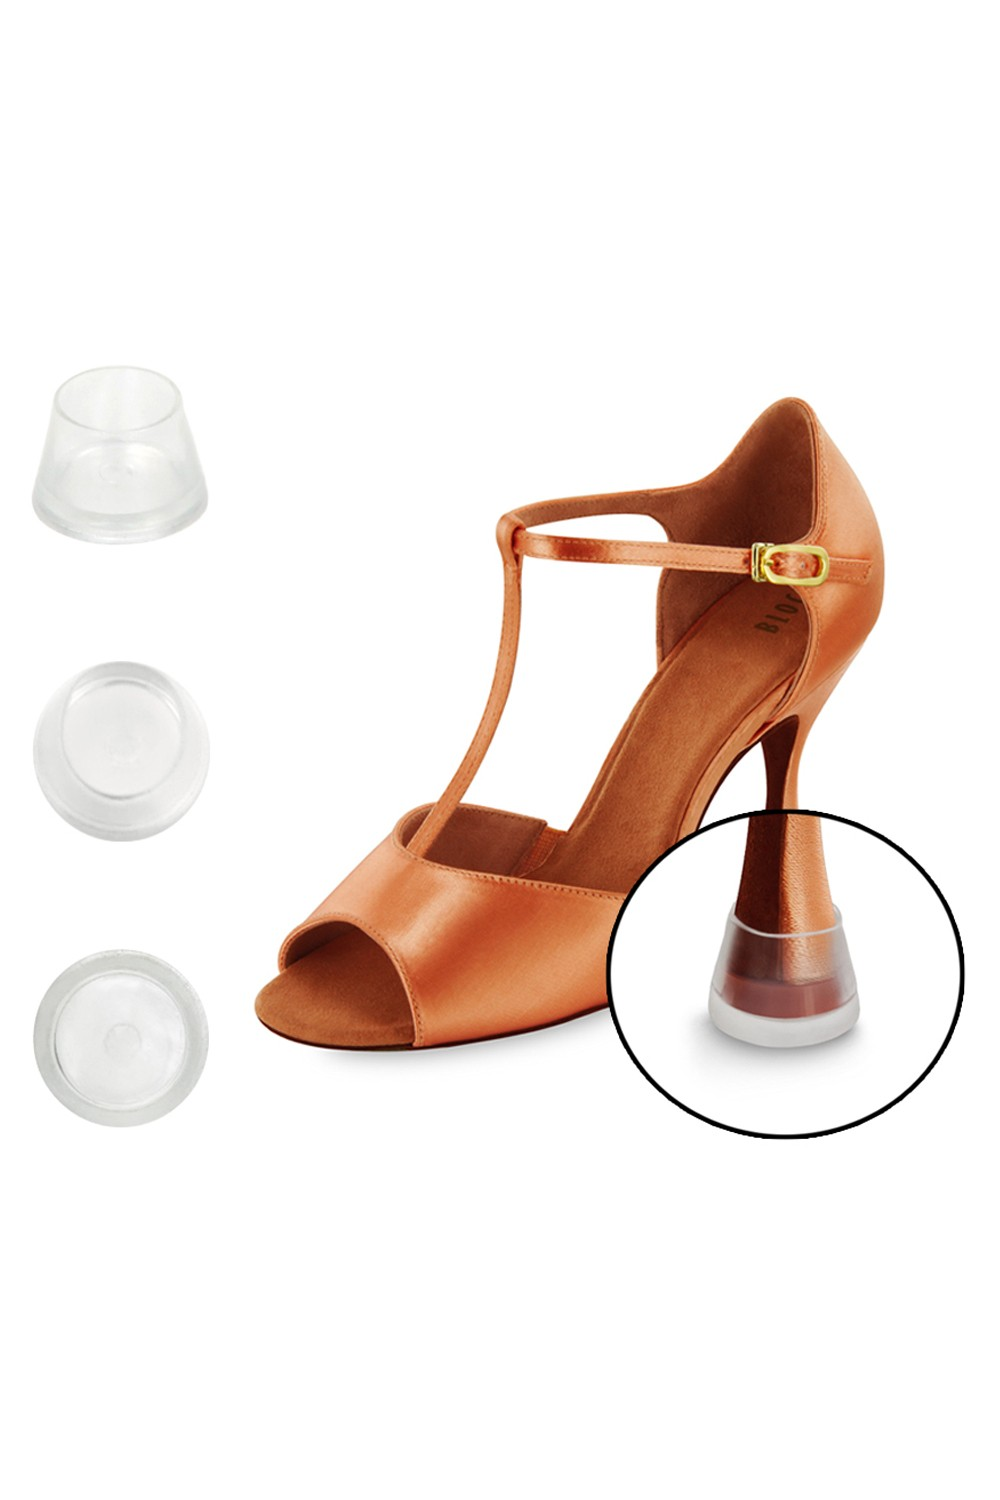 Round Heel Protector Dance Shoes Accessories